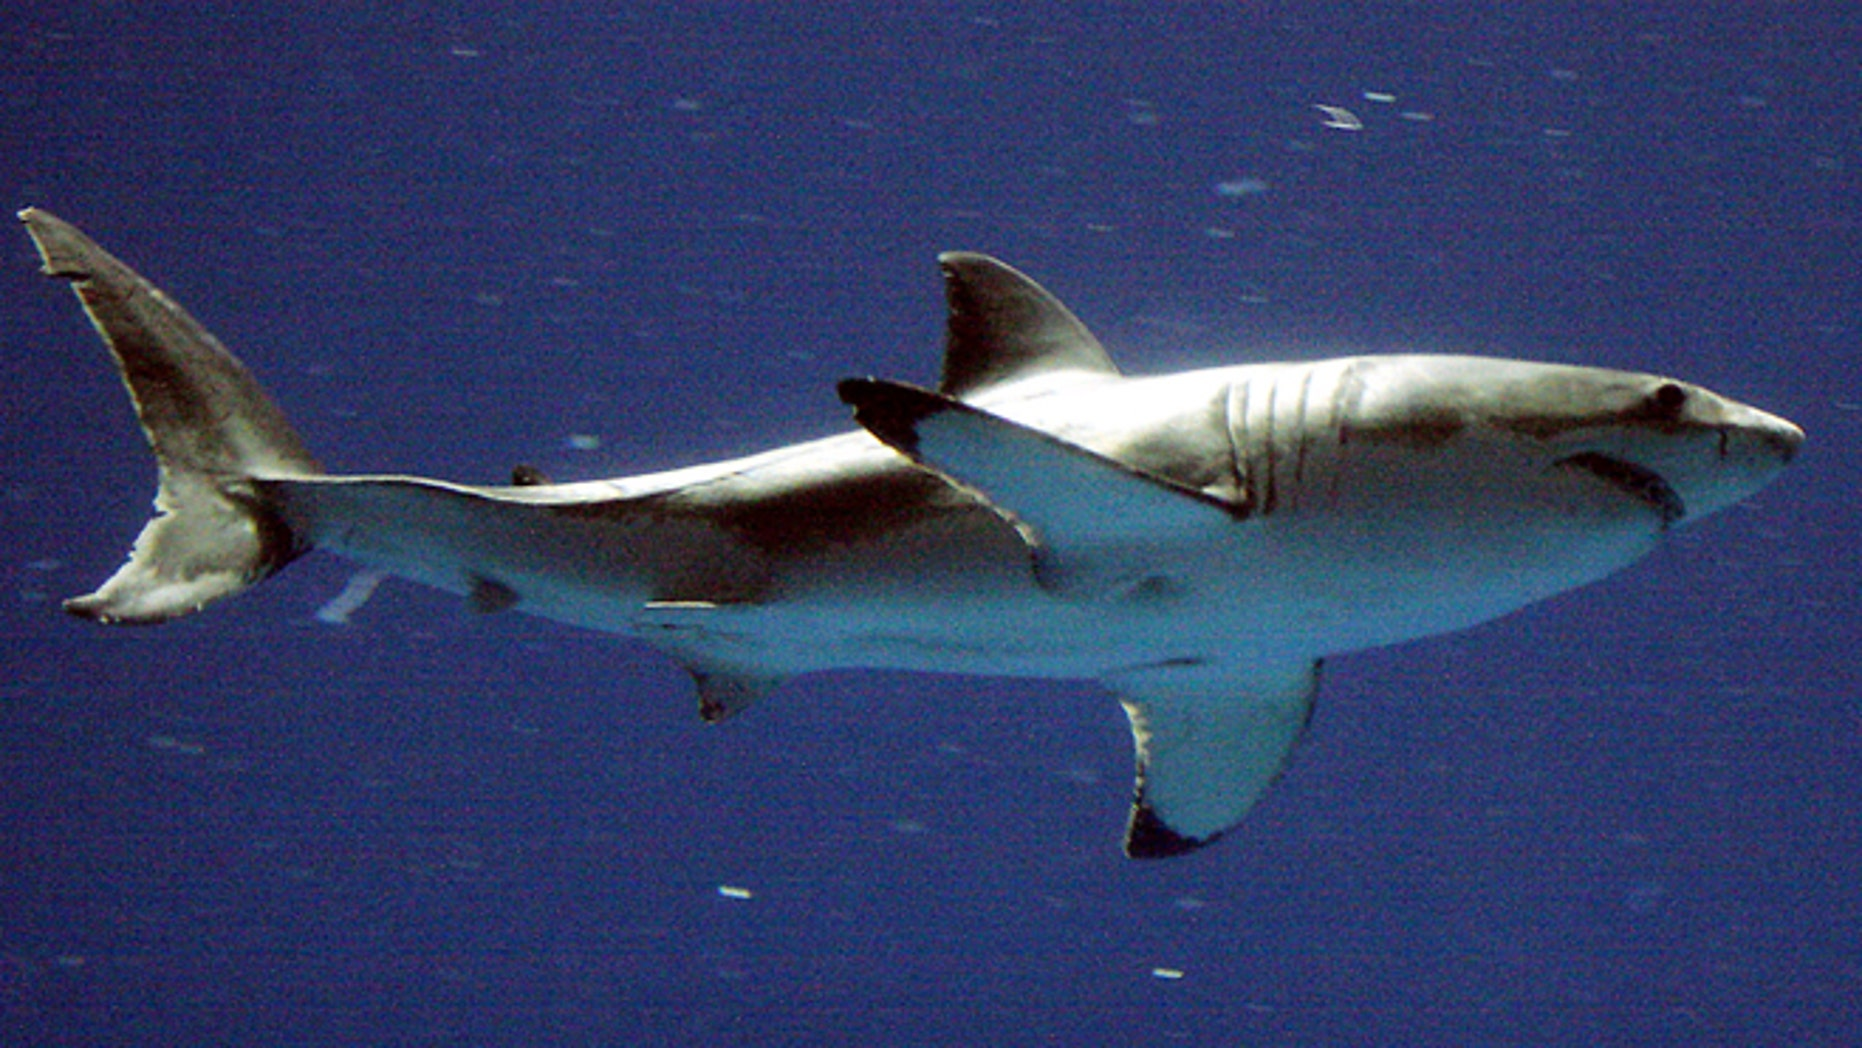 An adult film actress pretended to be bit by a shark last week while going diving off the coast of Palm Beach. She faked the bite so the video of her getting bit would go viral.